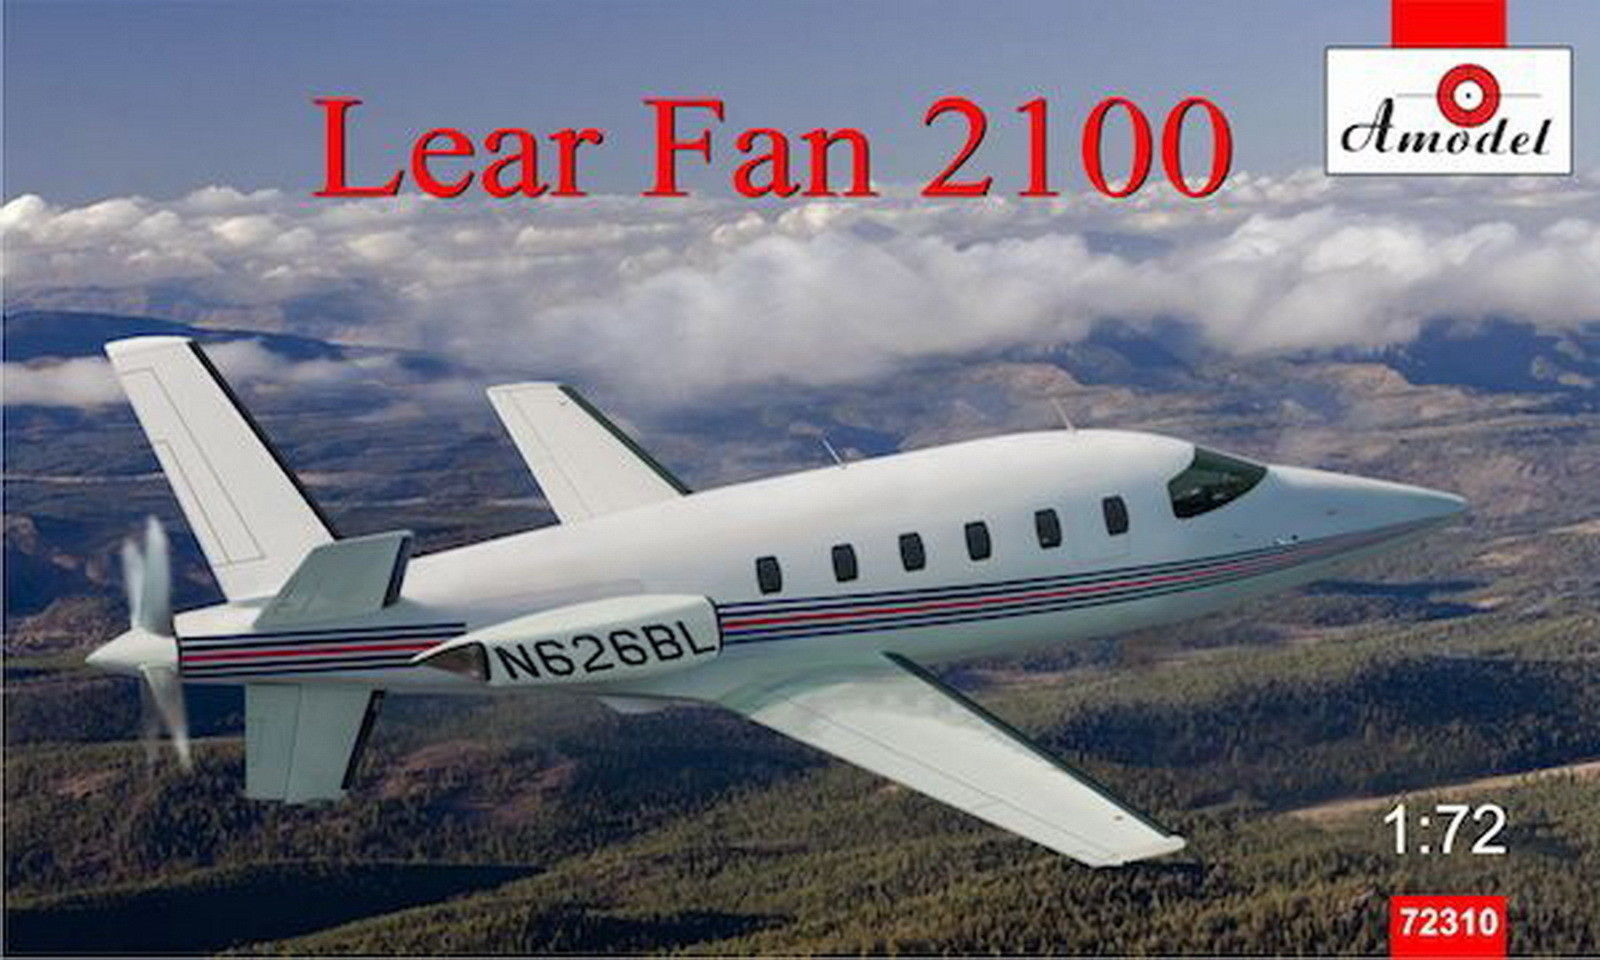 Amodel 1/72 LearAvia Lear Fan 2100 turboprop aircraft prototype